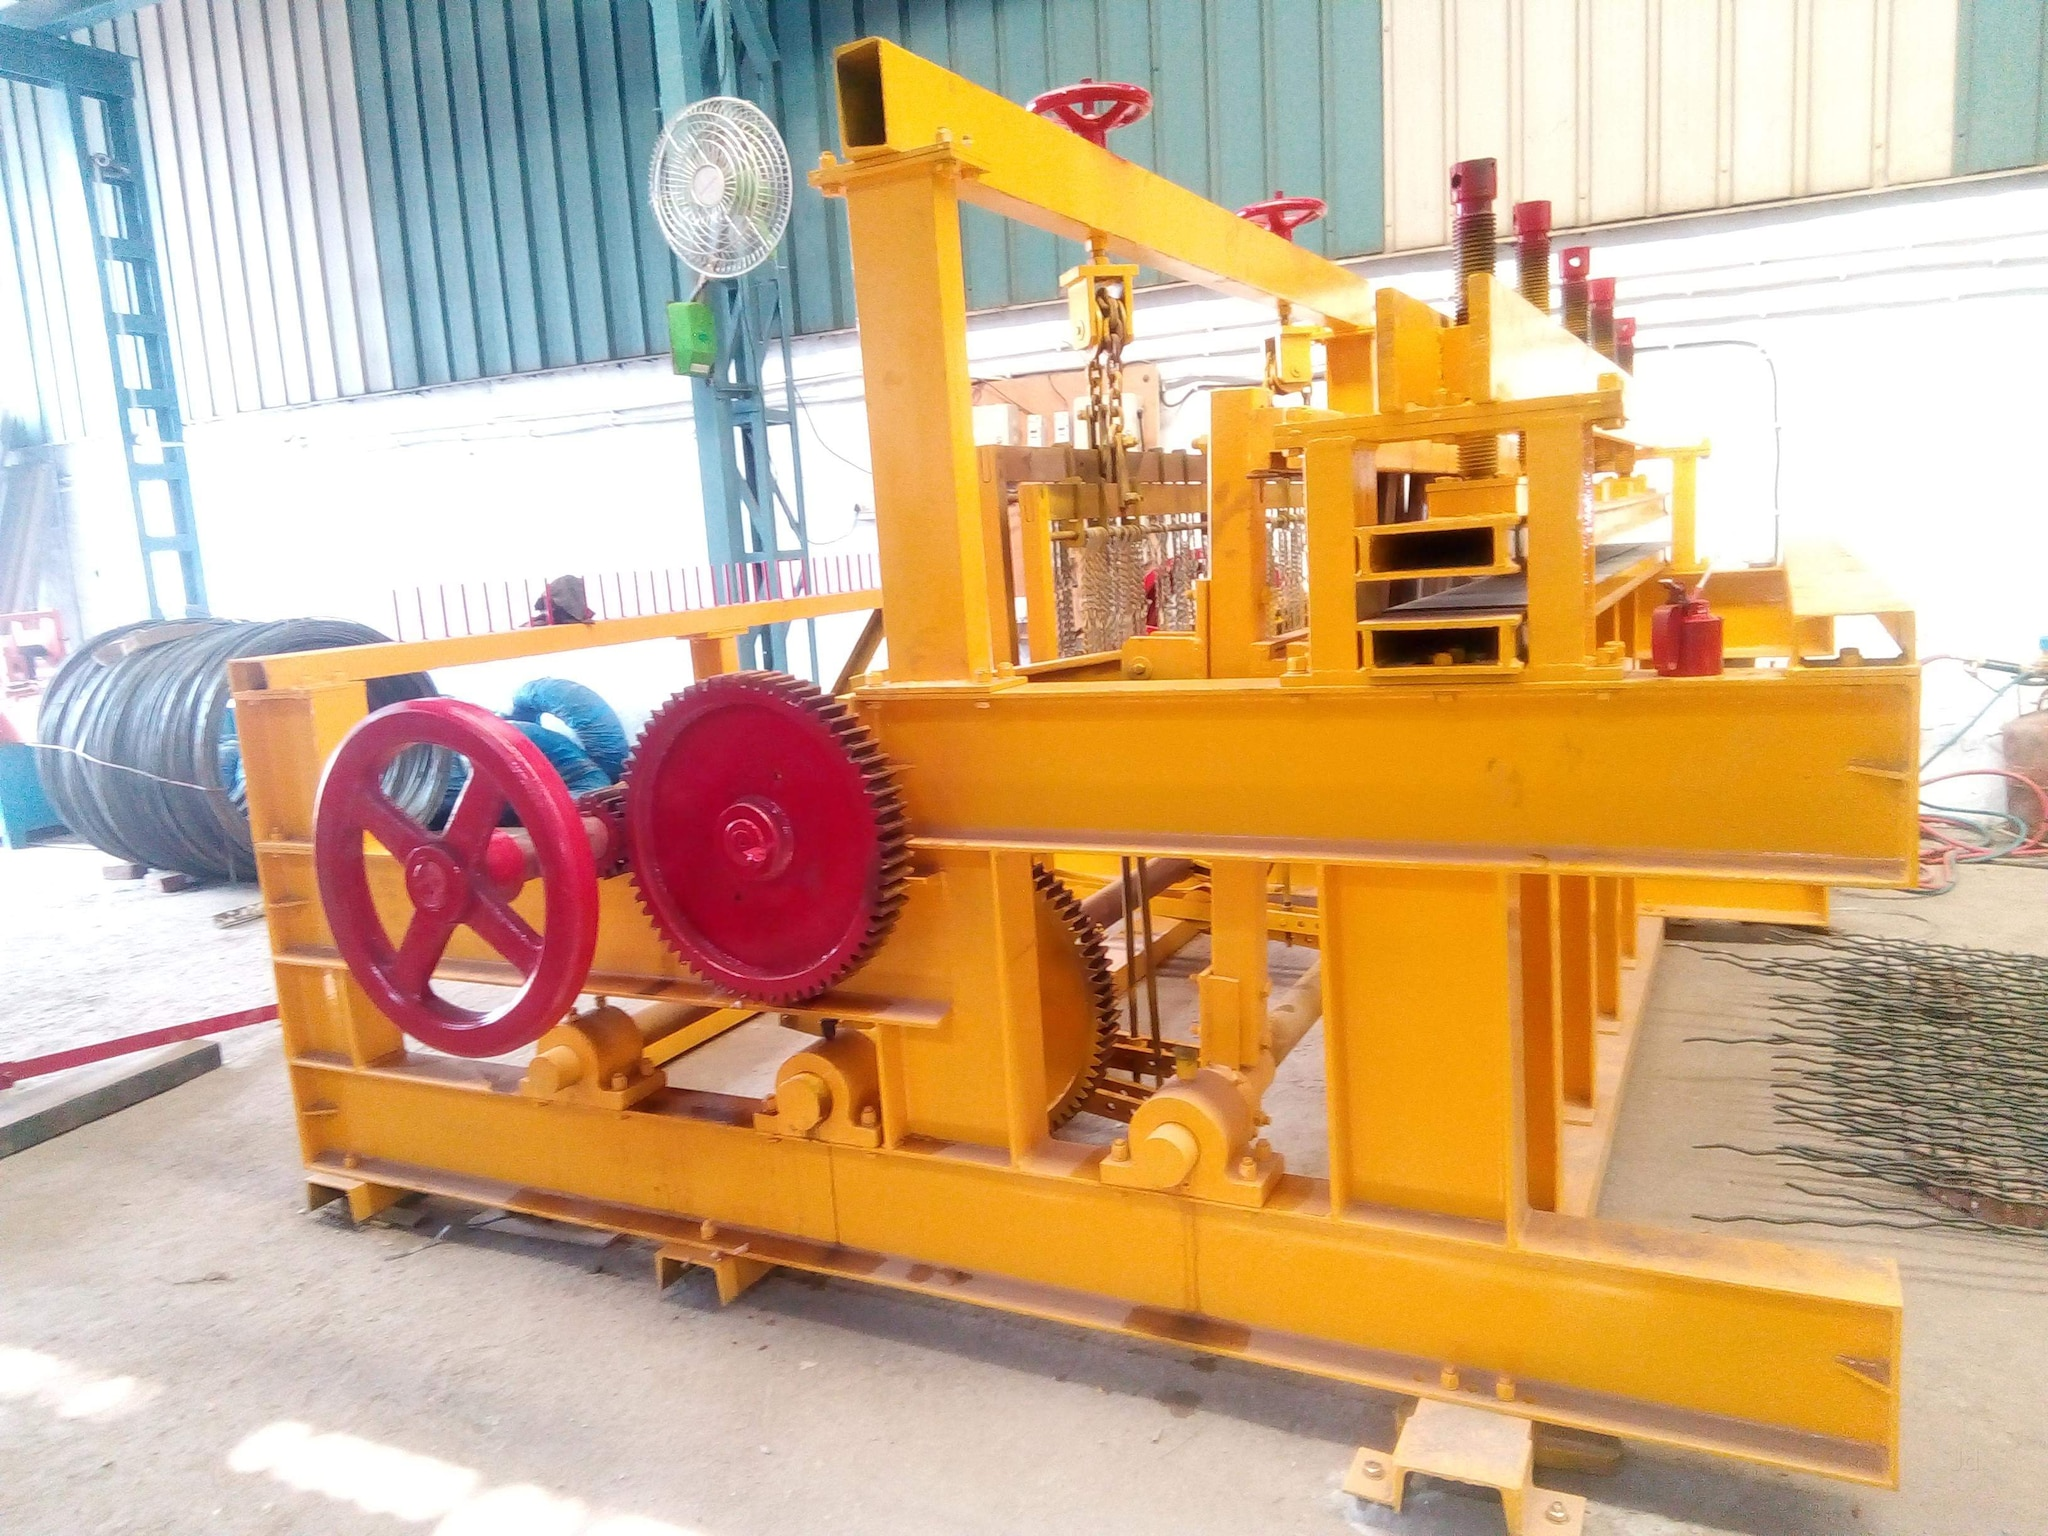 Top Power Loom Machine Manufacturers in Chandigarh - Justdial